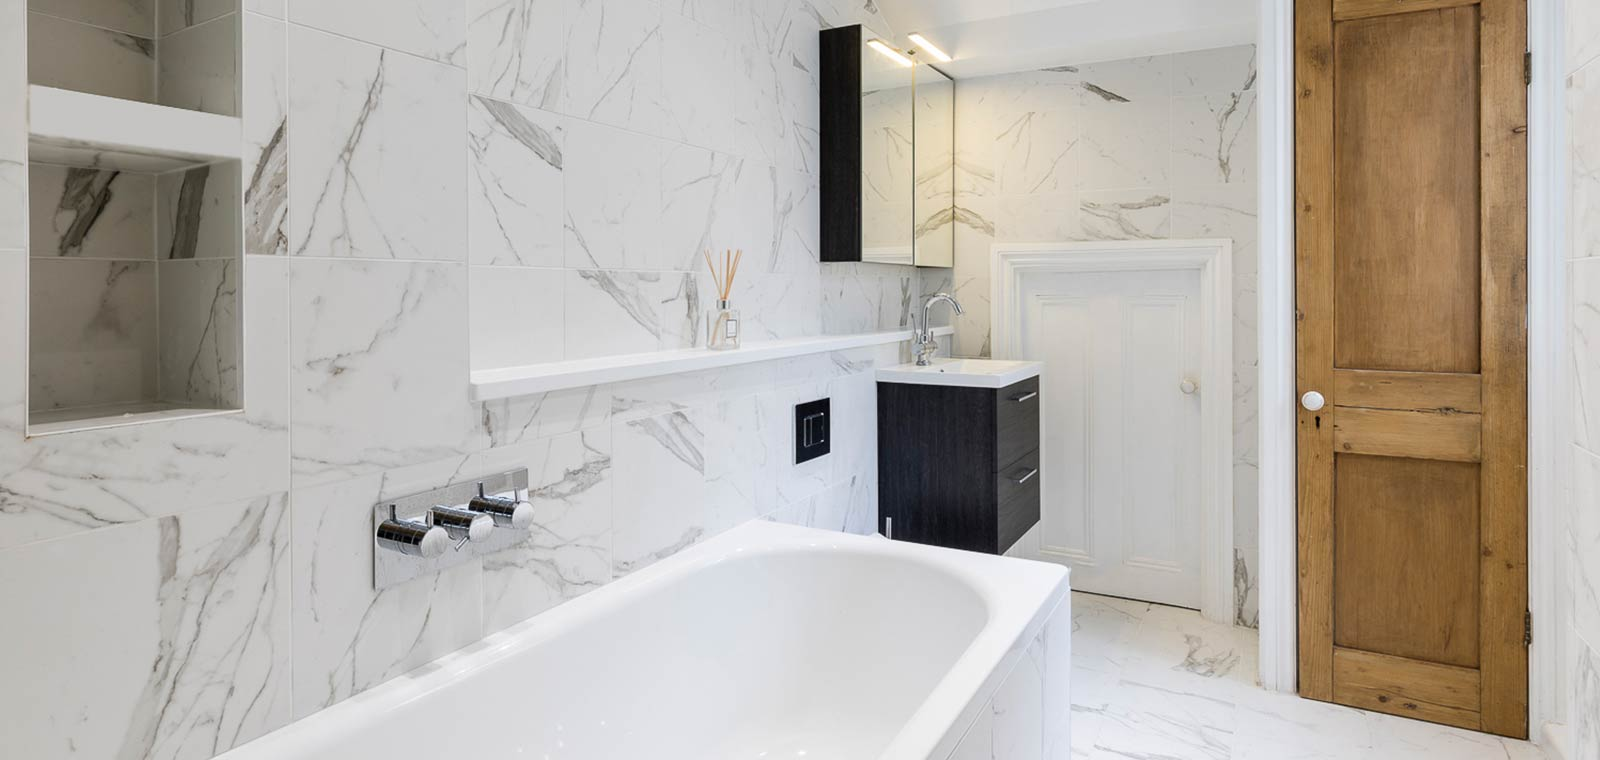 Barons Court basement extension and redesign by Rees Architects - modern bathroom design idea